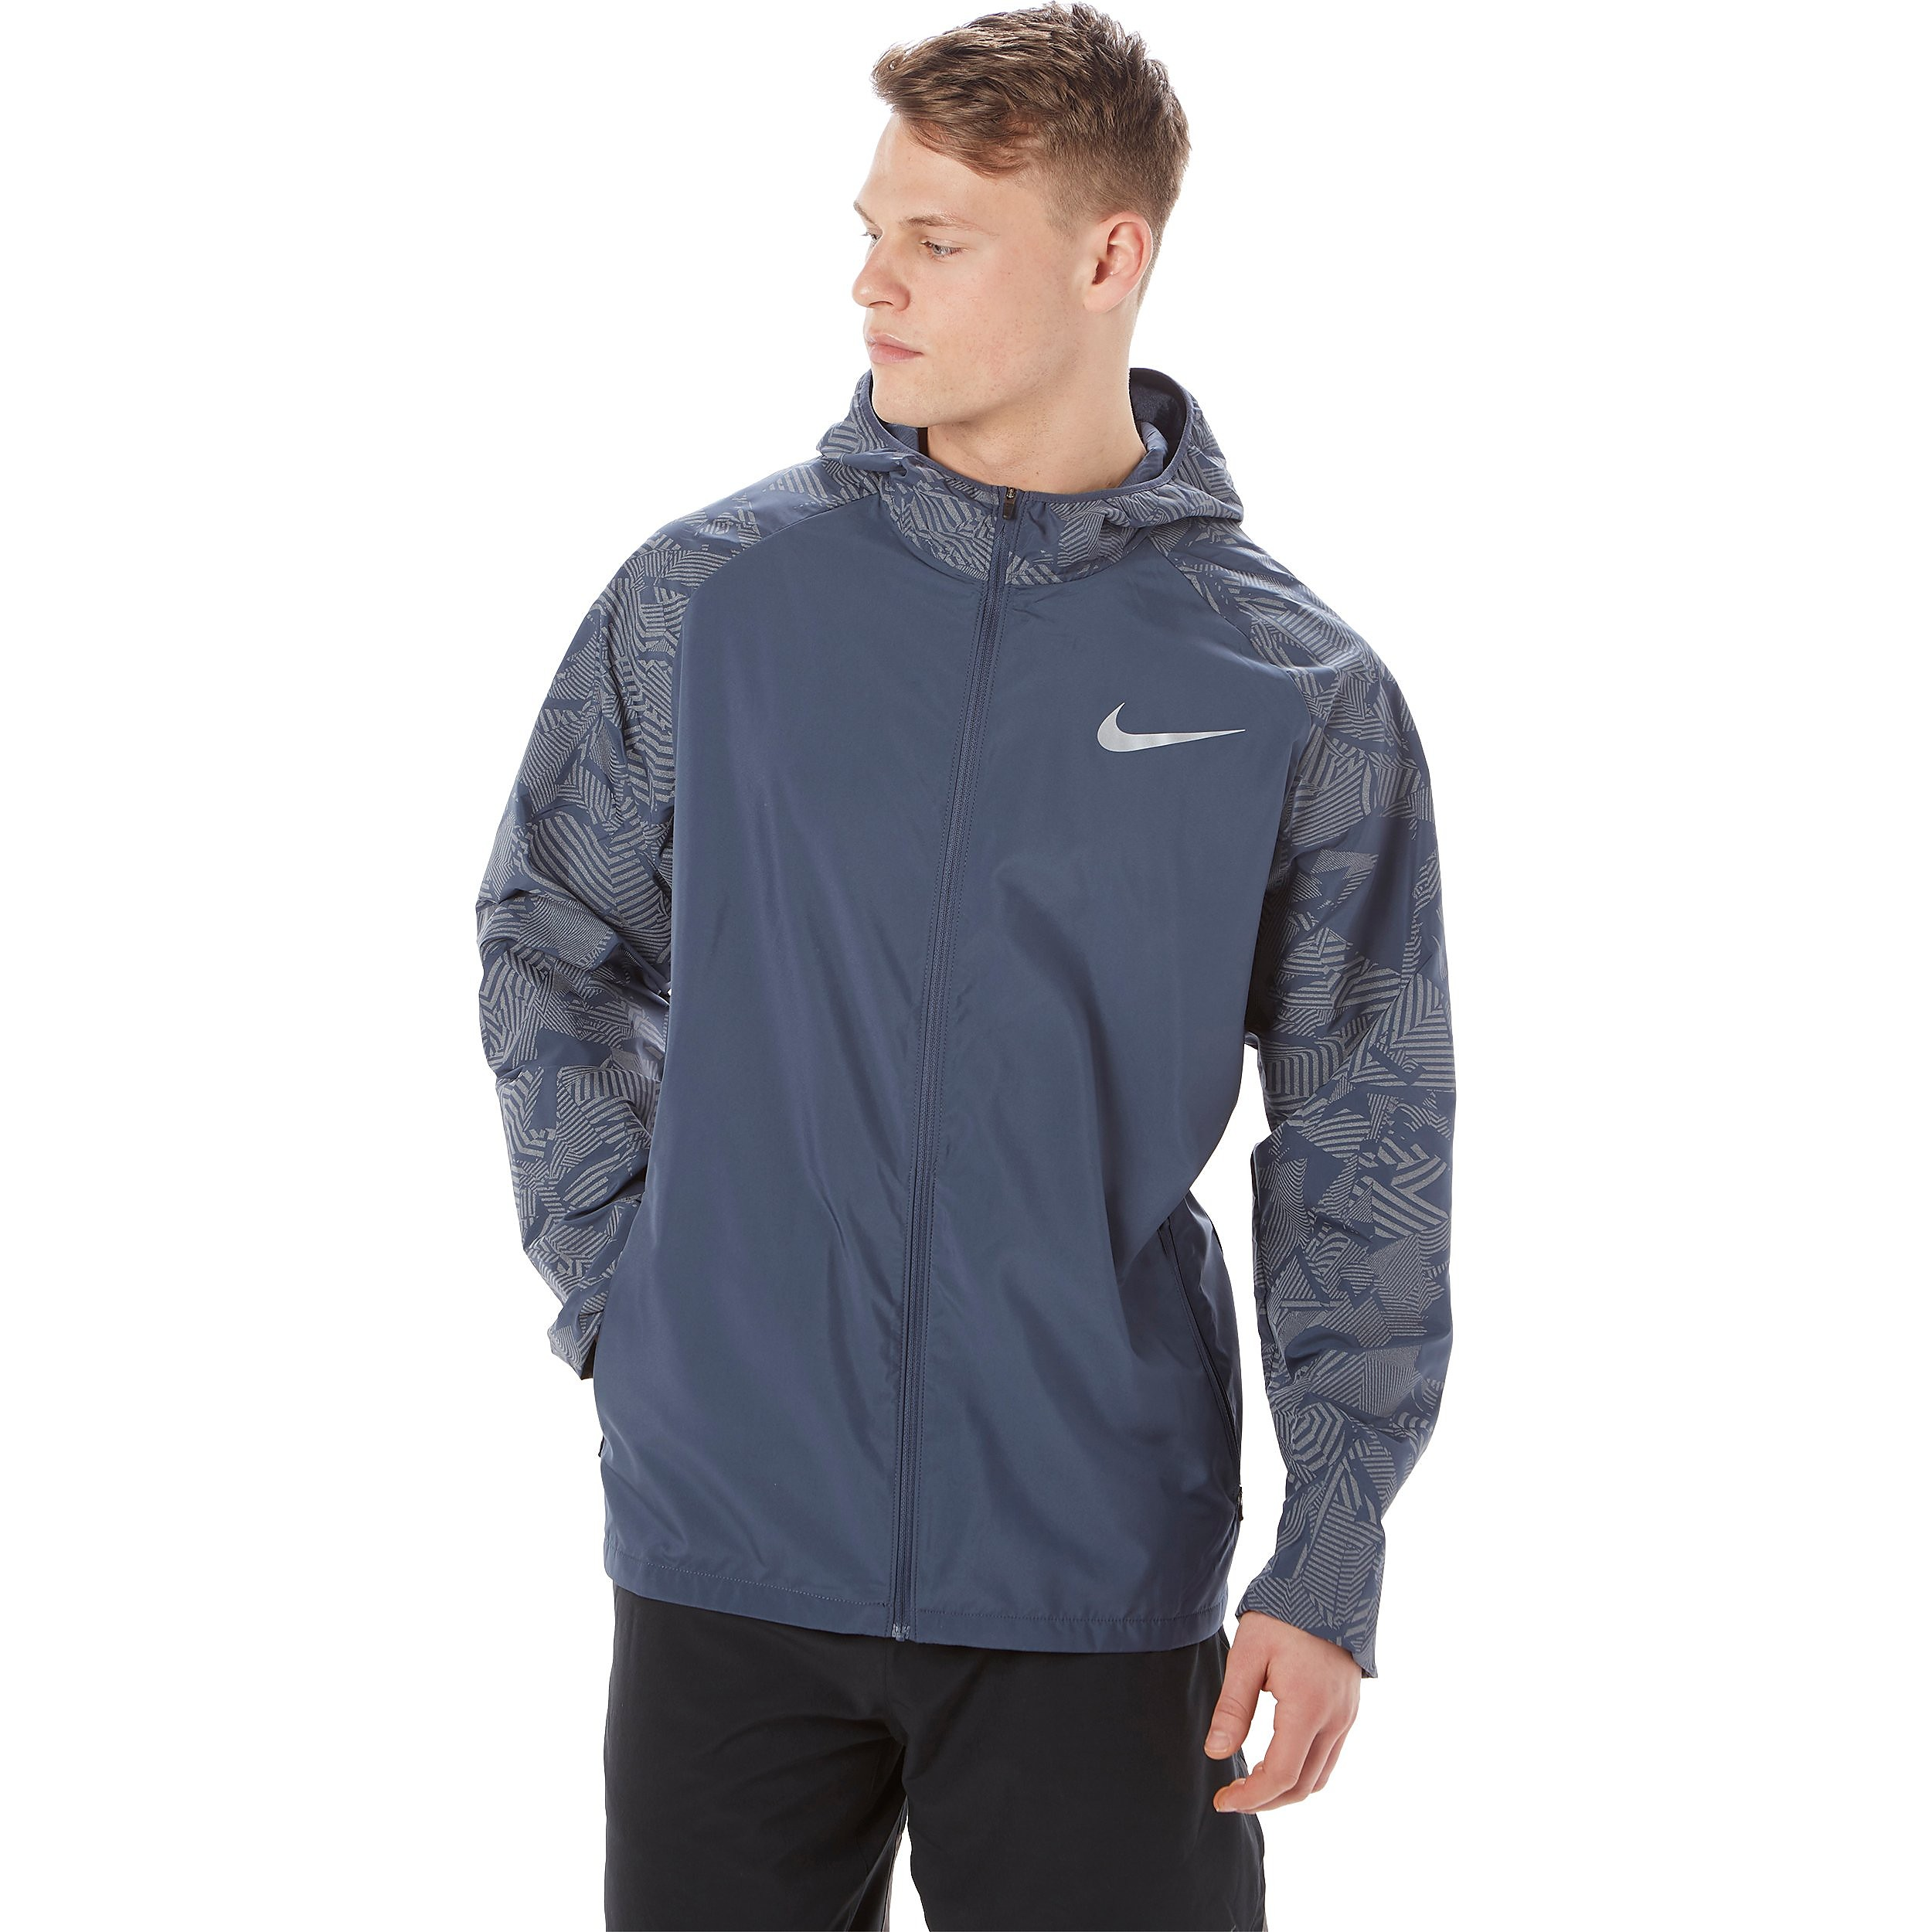 Nike Flash Men's Jacket